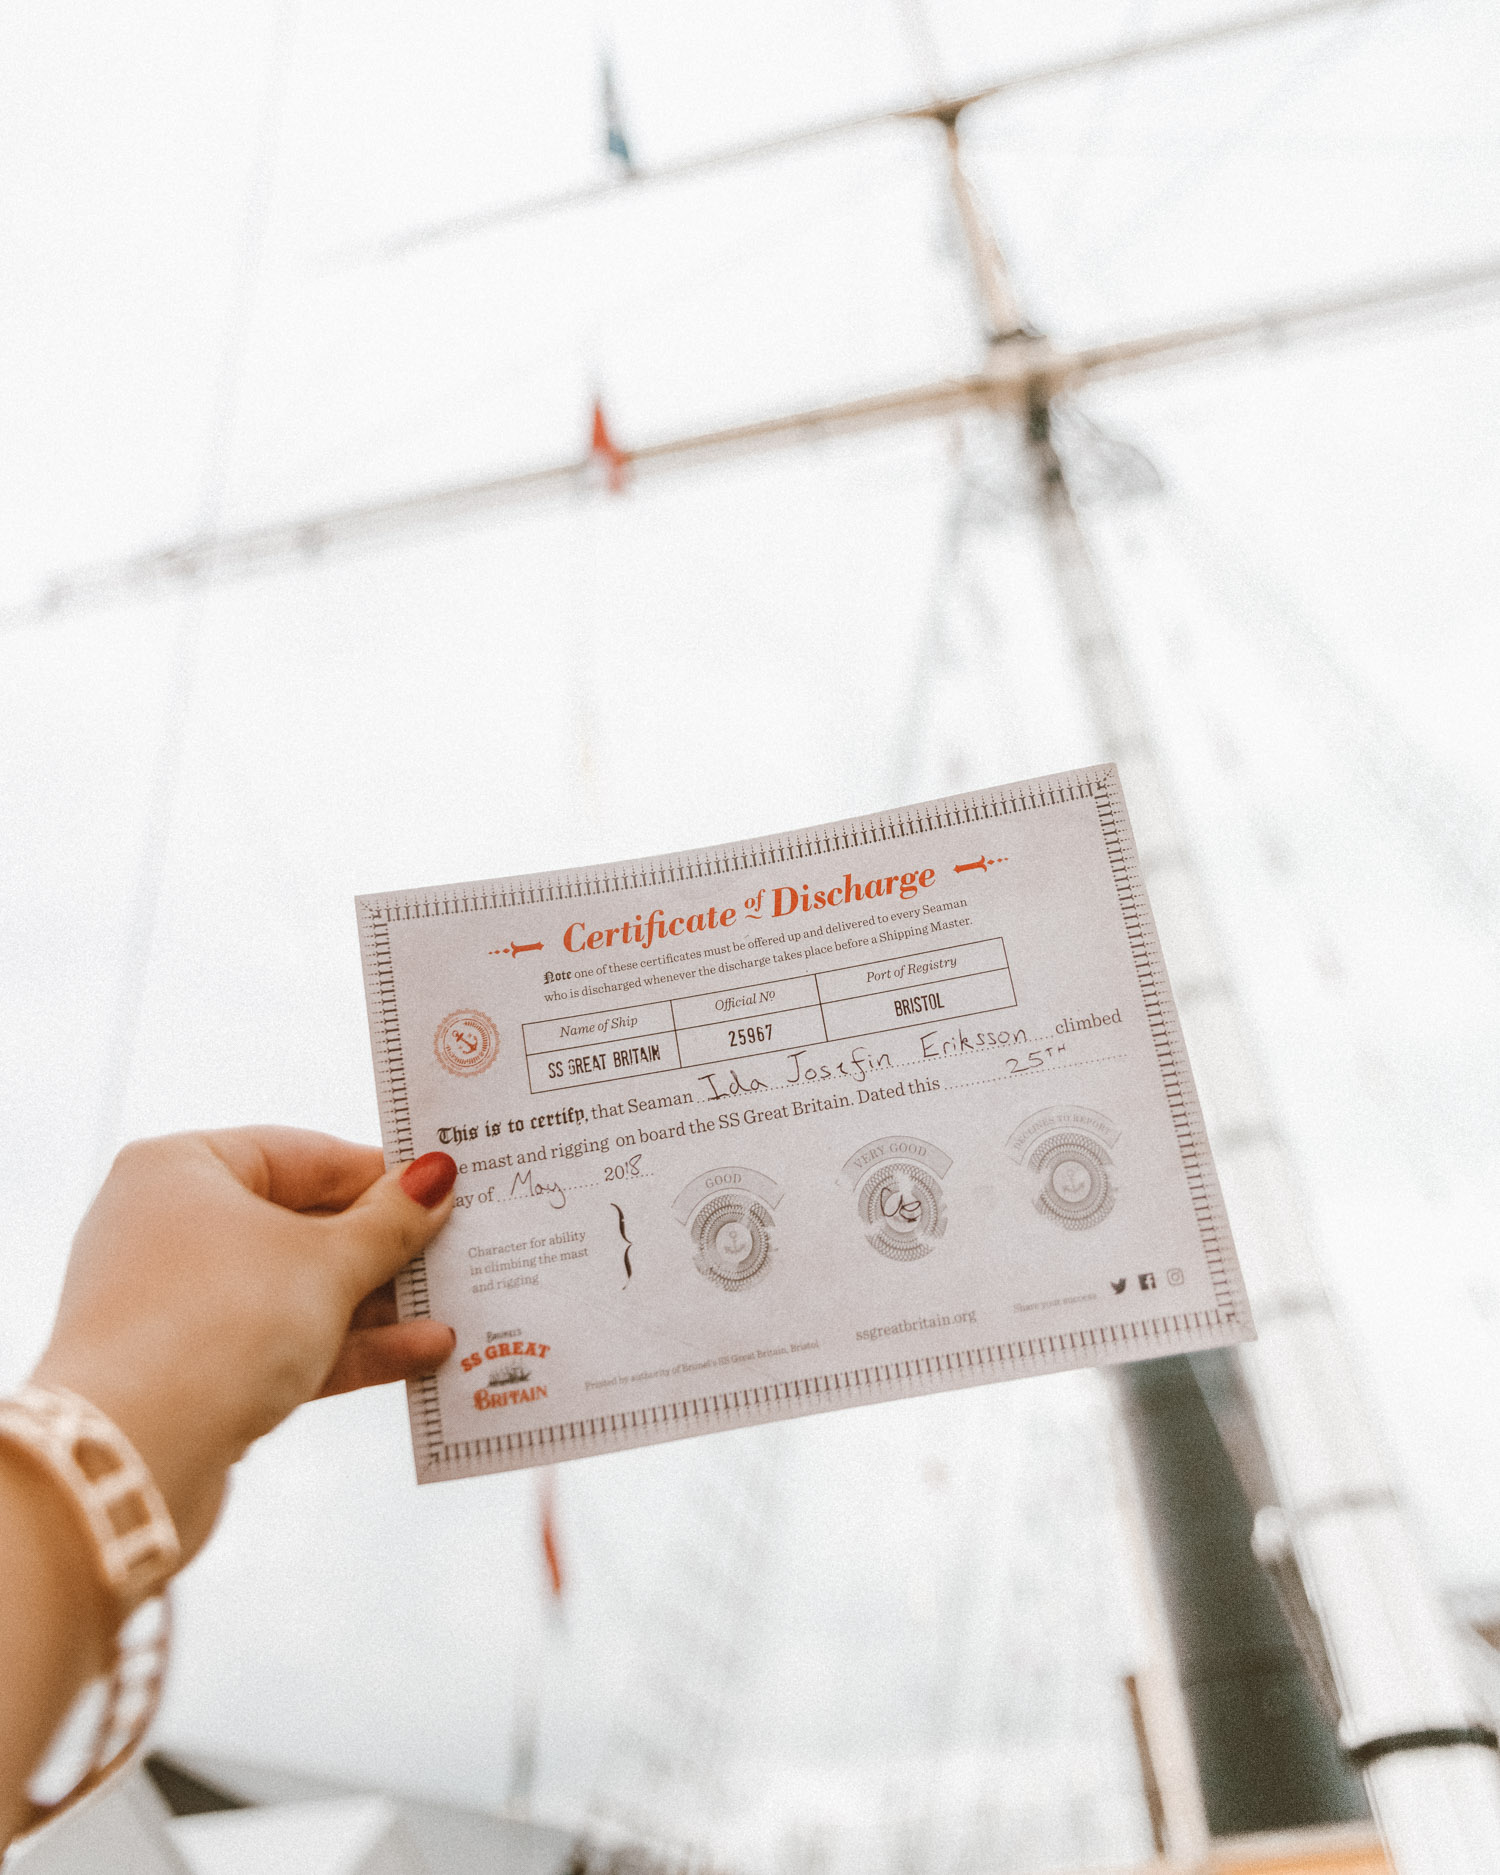 Certificate of Discharge |SS Great Britain